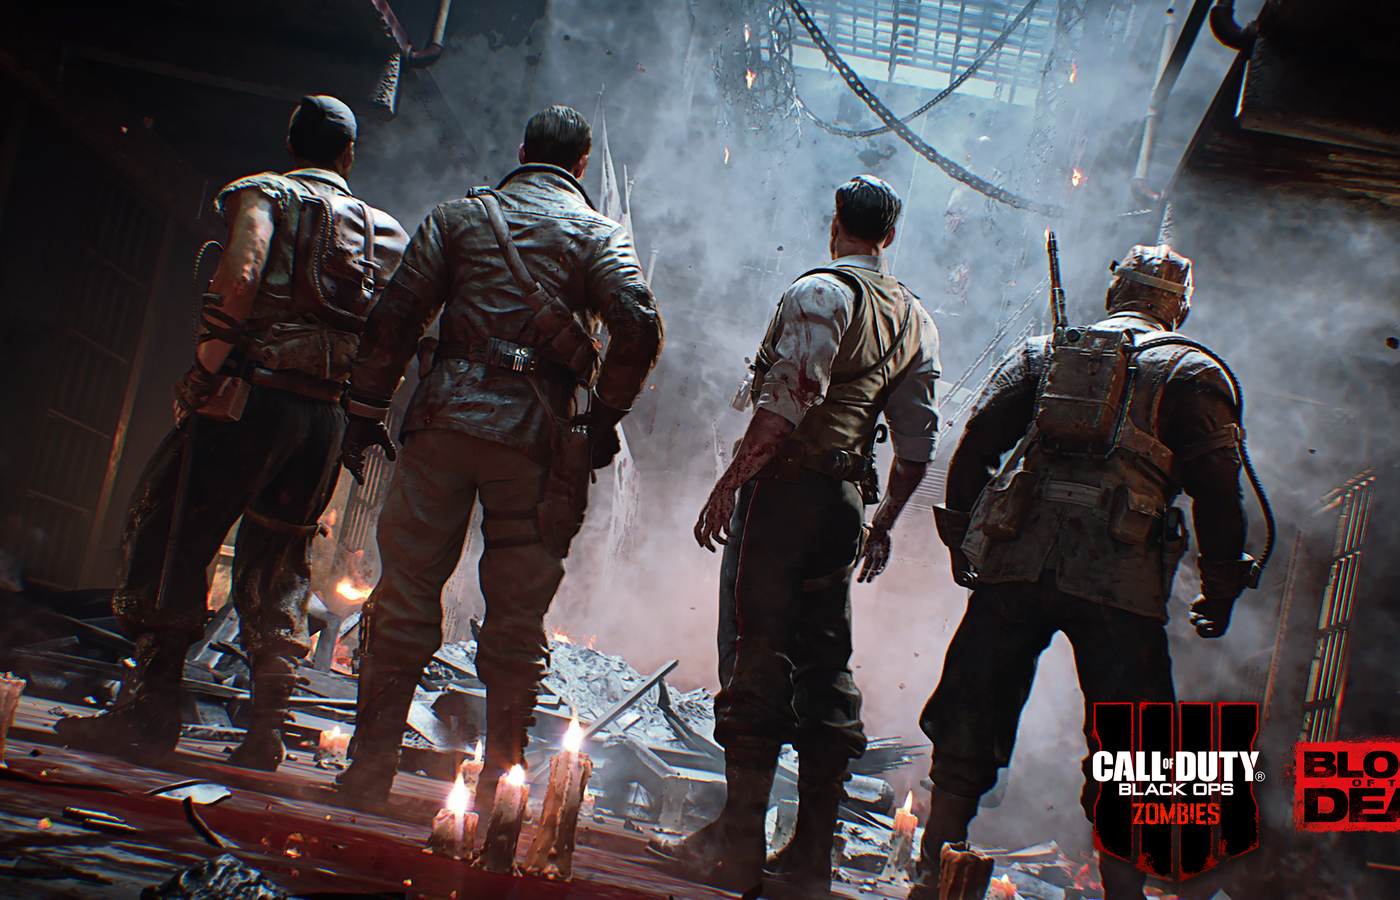 call-of-duty-black-ops-4-zombies-blood-of-the-dead-4k-ao.jpg